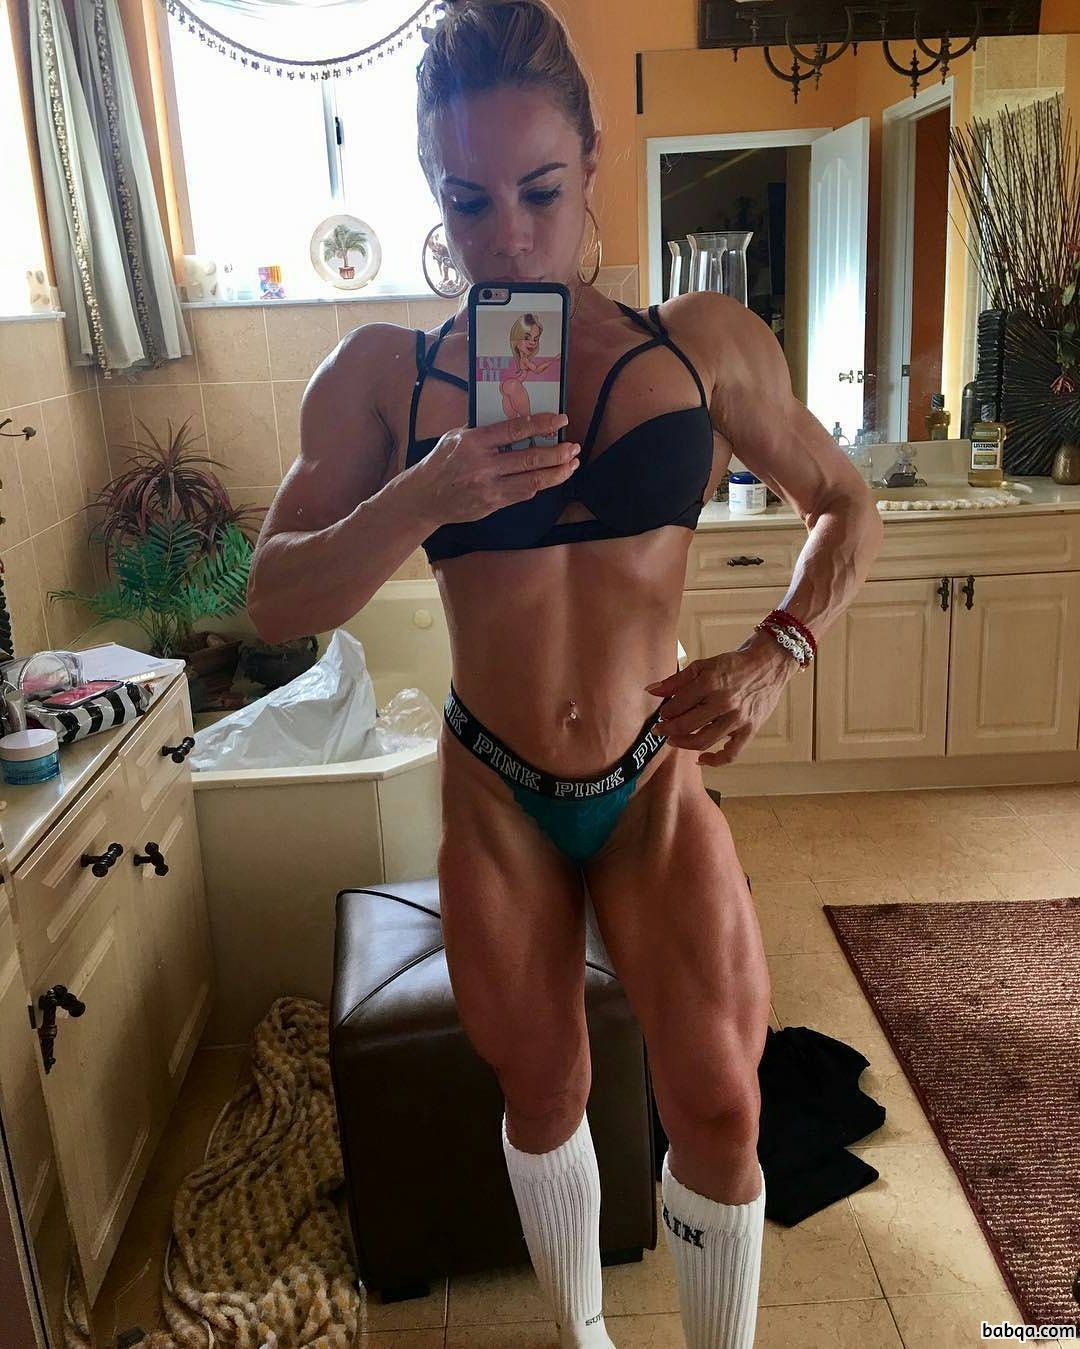 perfect female with muscle body and muscle ass image from tumblr